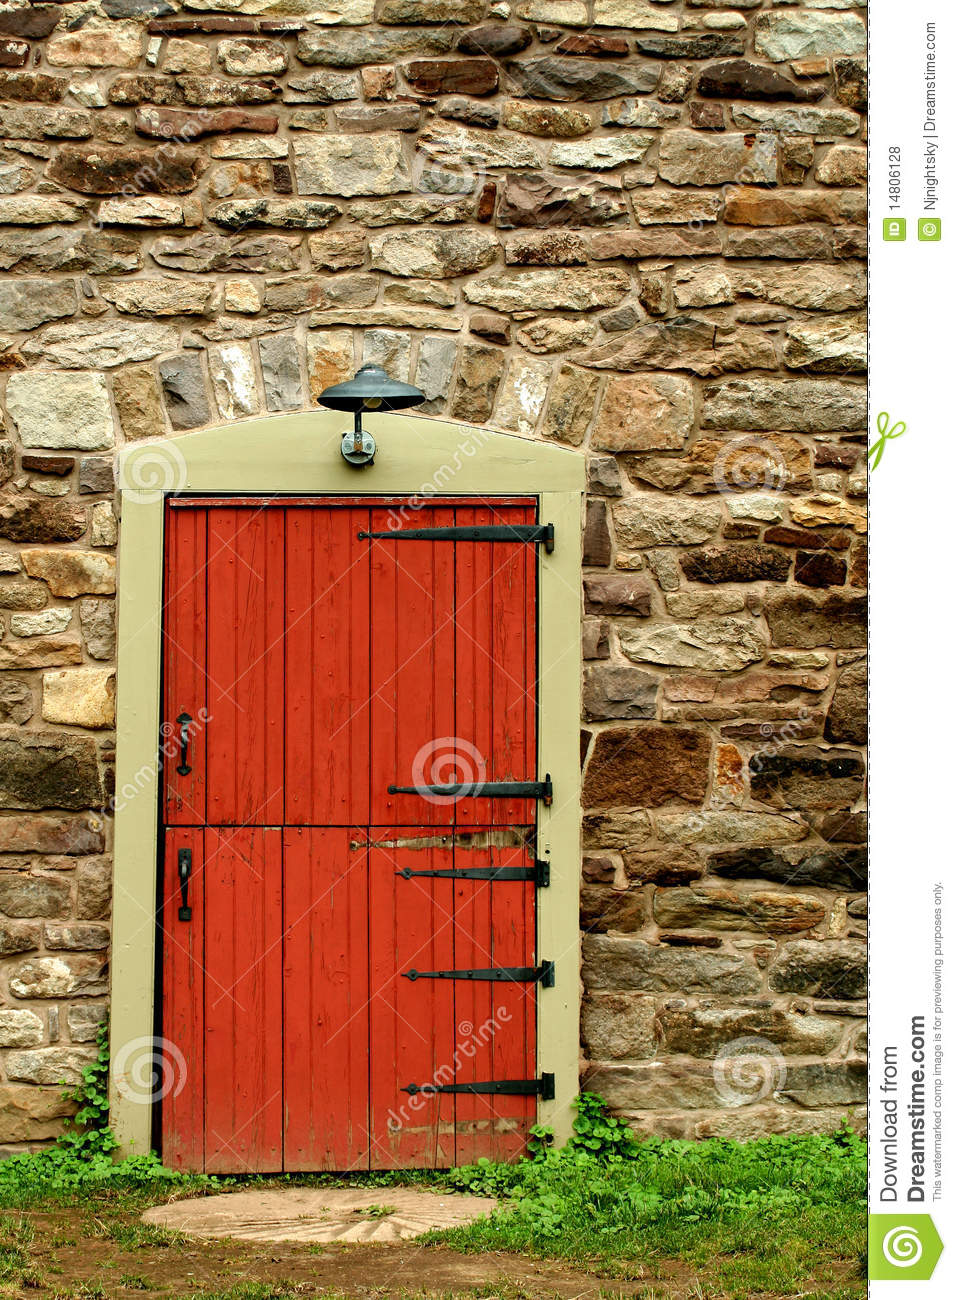 Red Doors Stone : Red door on a old stone building royalty free stock photos